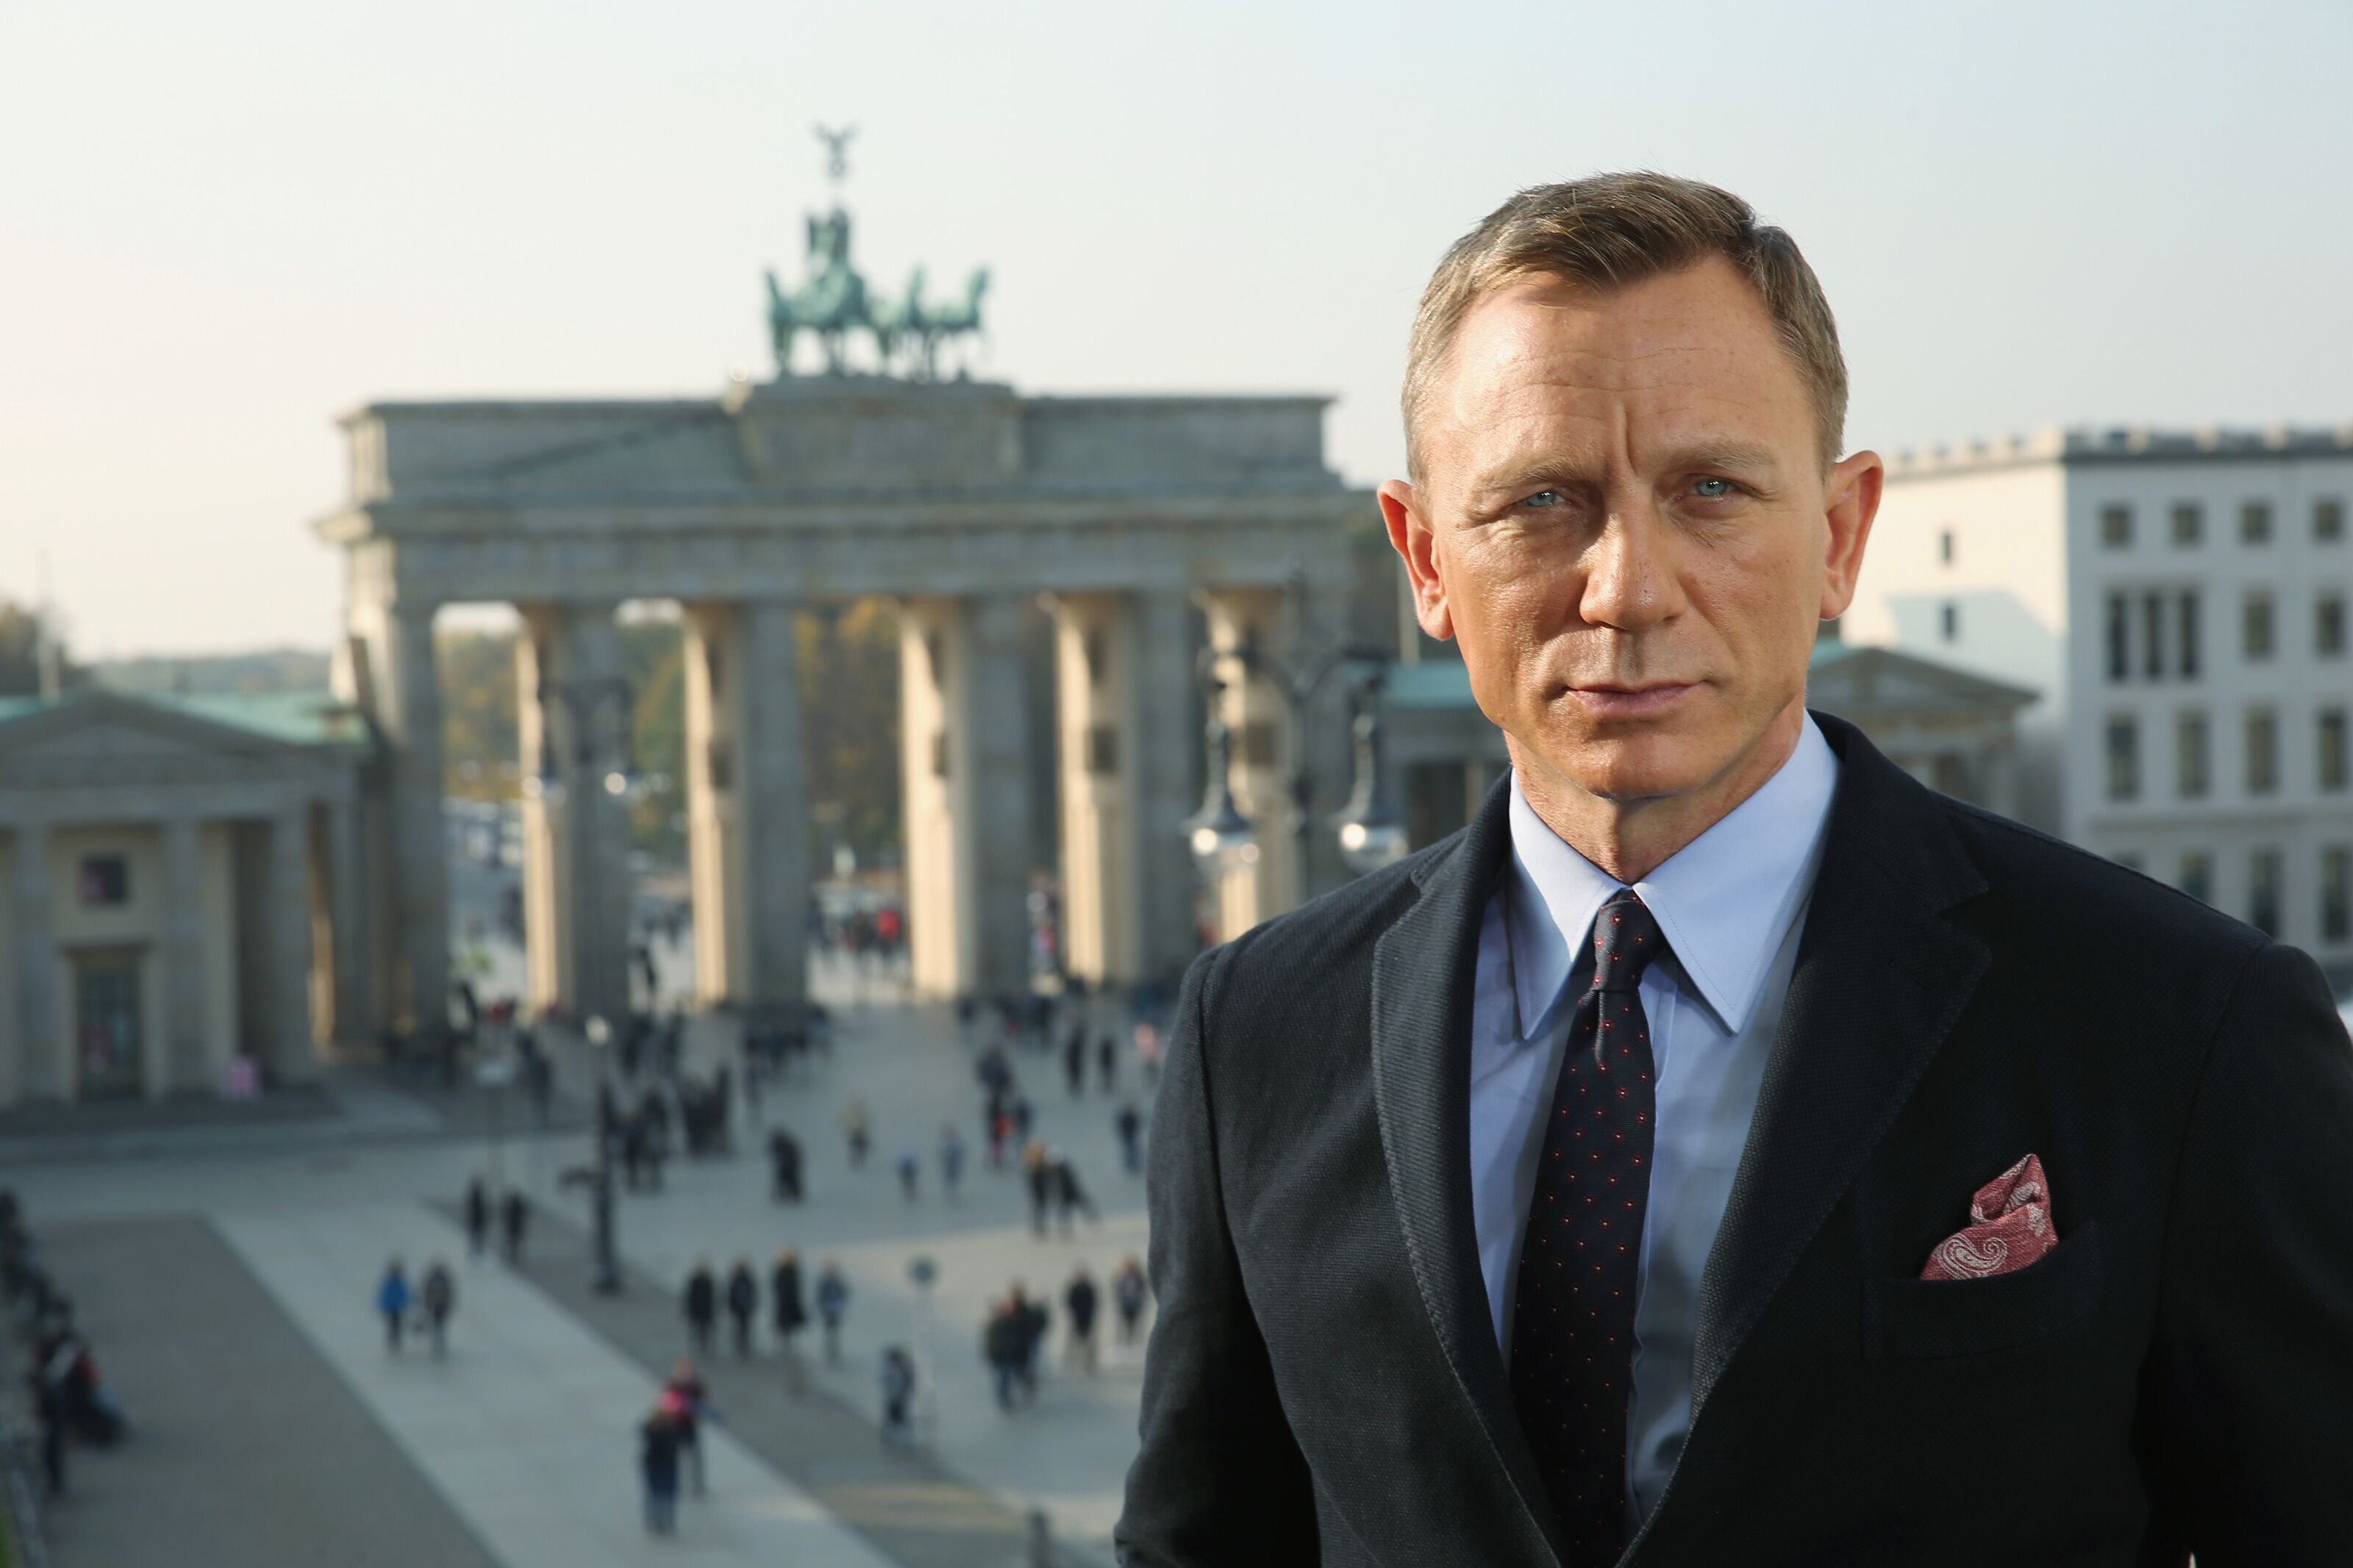 Bond 25: Daniel Craig's last Bond film gets official title and logo